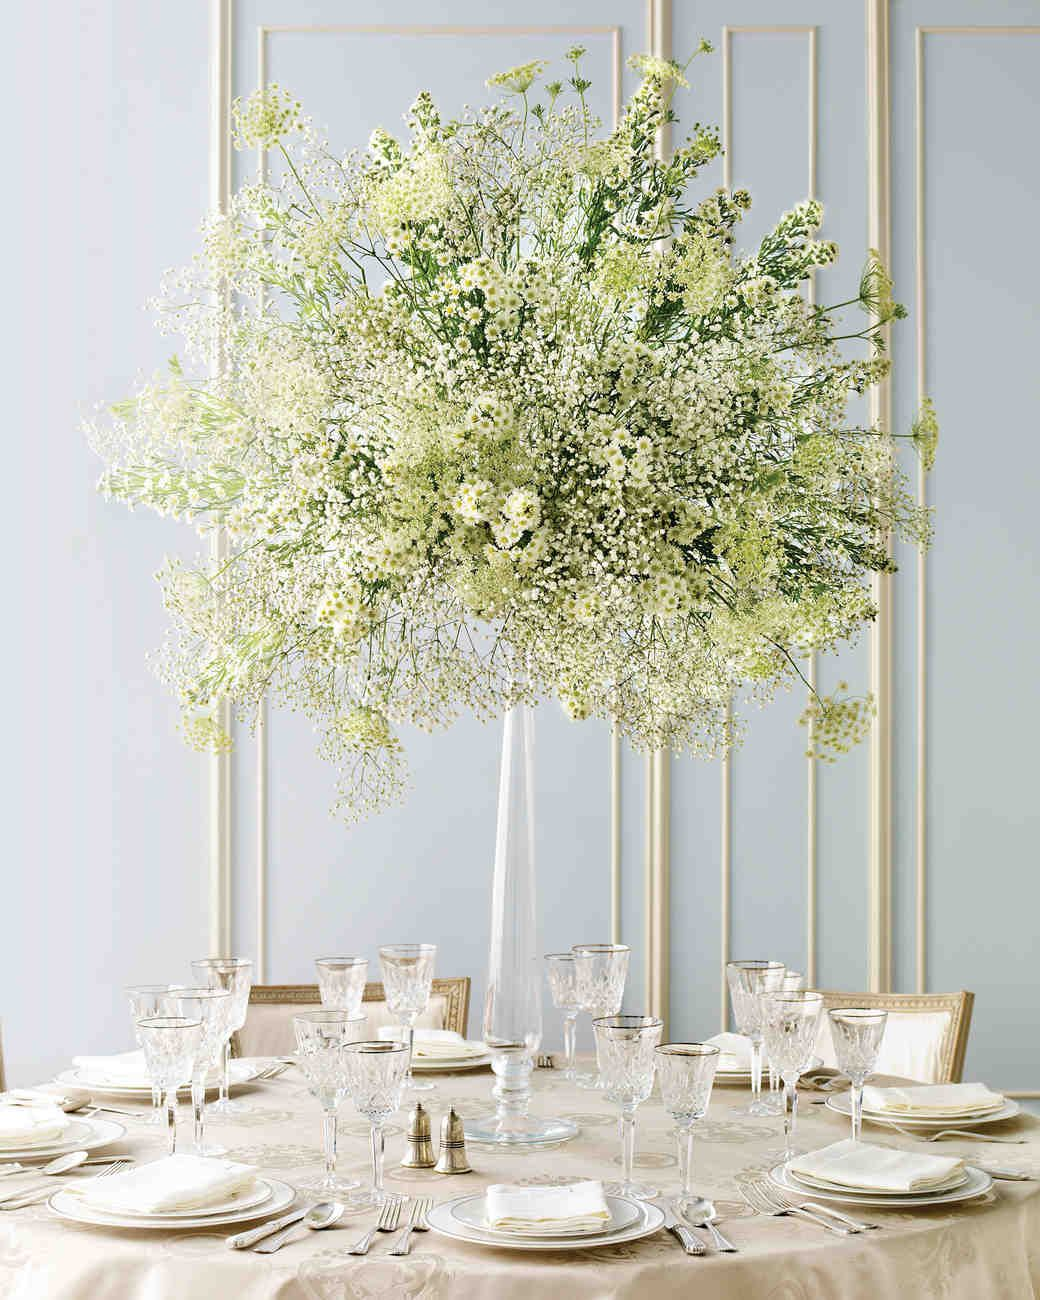 SPRAY CENTERPIECE Miniature daisies, doily-shaped Queen Anne's lace, and baby's breath come together in a beautiful balancing act atop a tall, graceful candlestick. Elegant and Inexpensive Wedding Flower Ideas   Martha Stewart Weddings